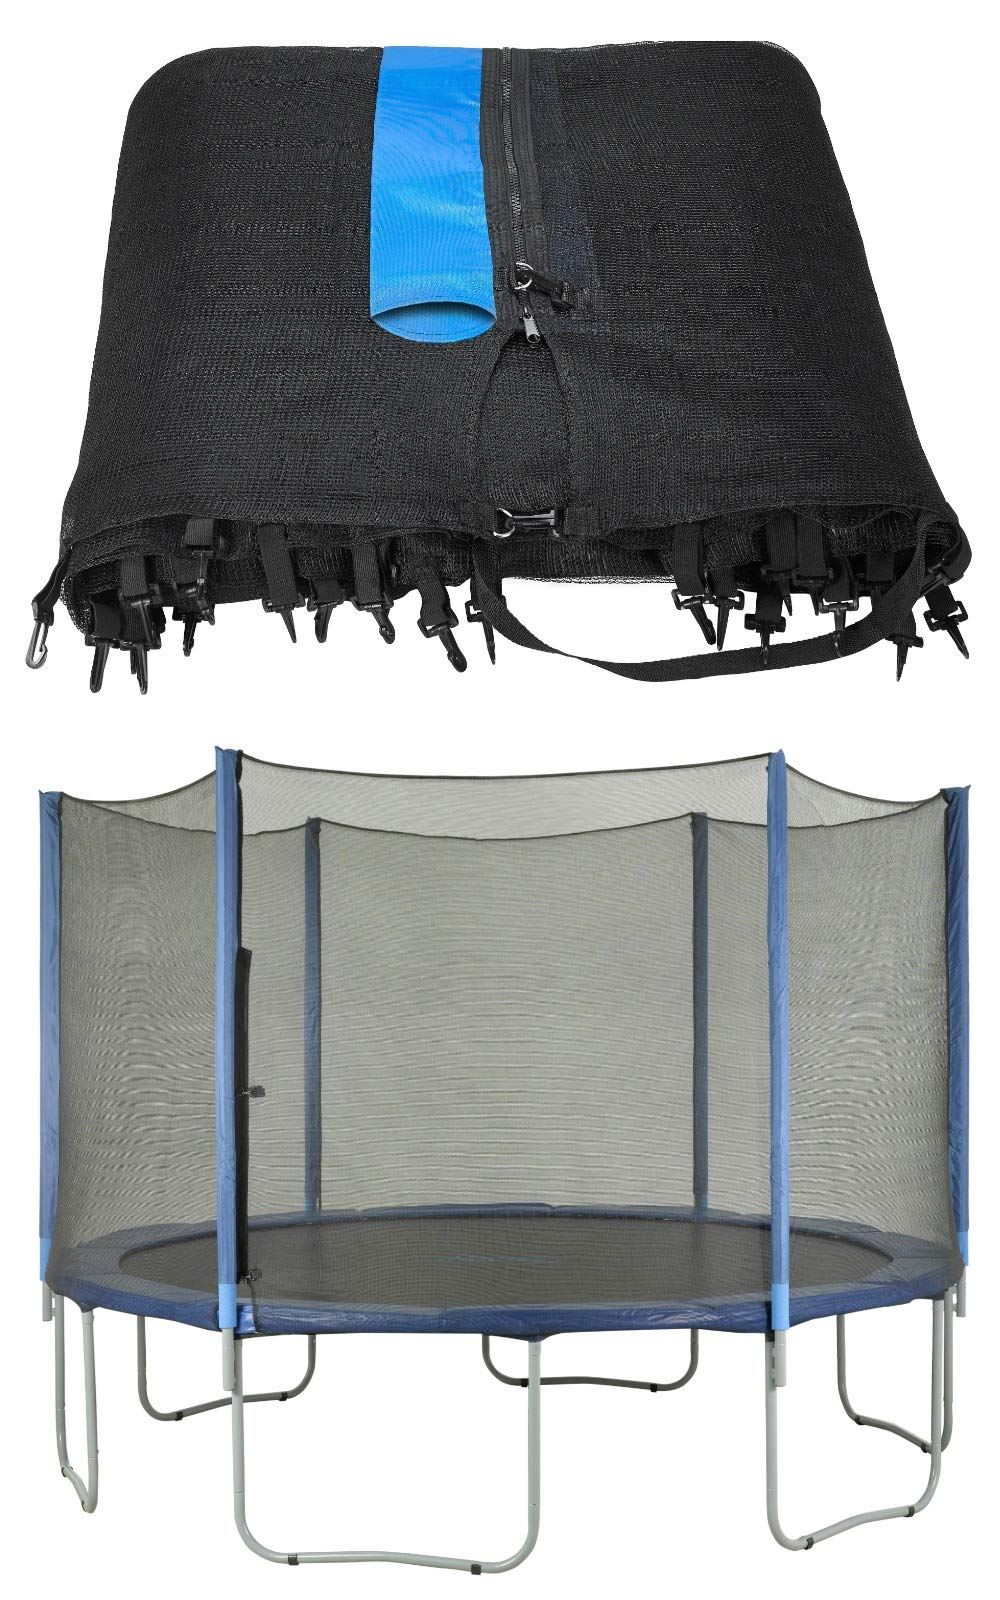 Upper Bounce Trampoline Replacement Net, Fits for 12 FT. Round Frames, Using 6 Straight Poles, Installs Outside of Frame -NET ONLY